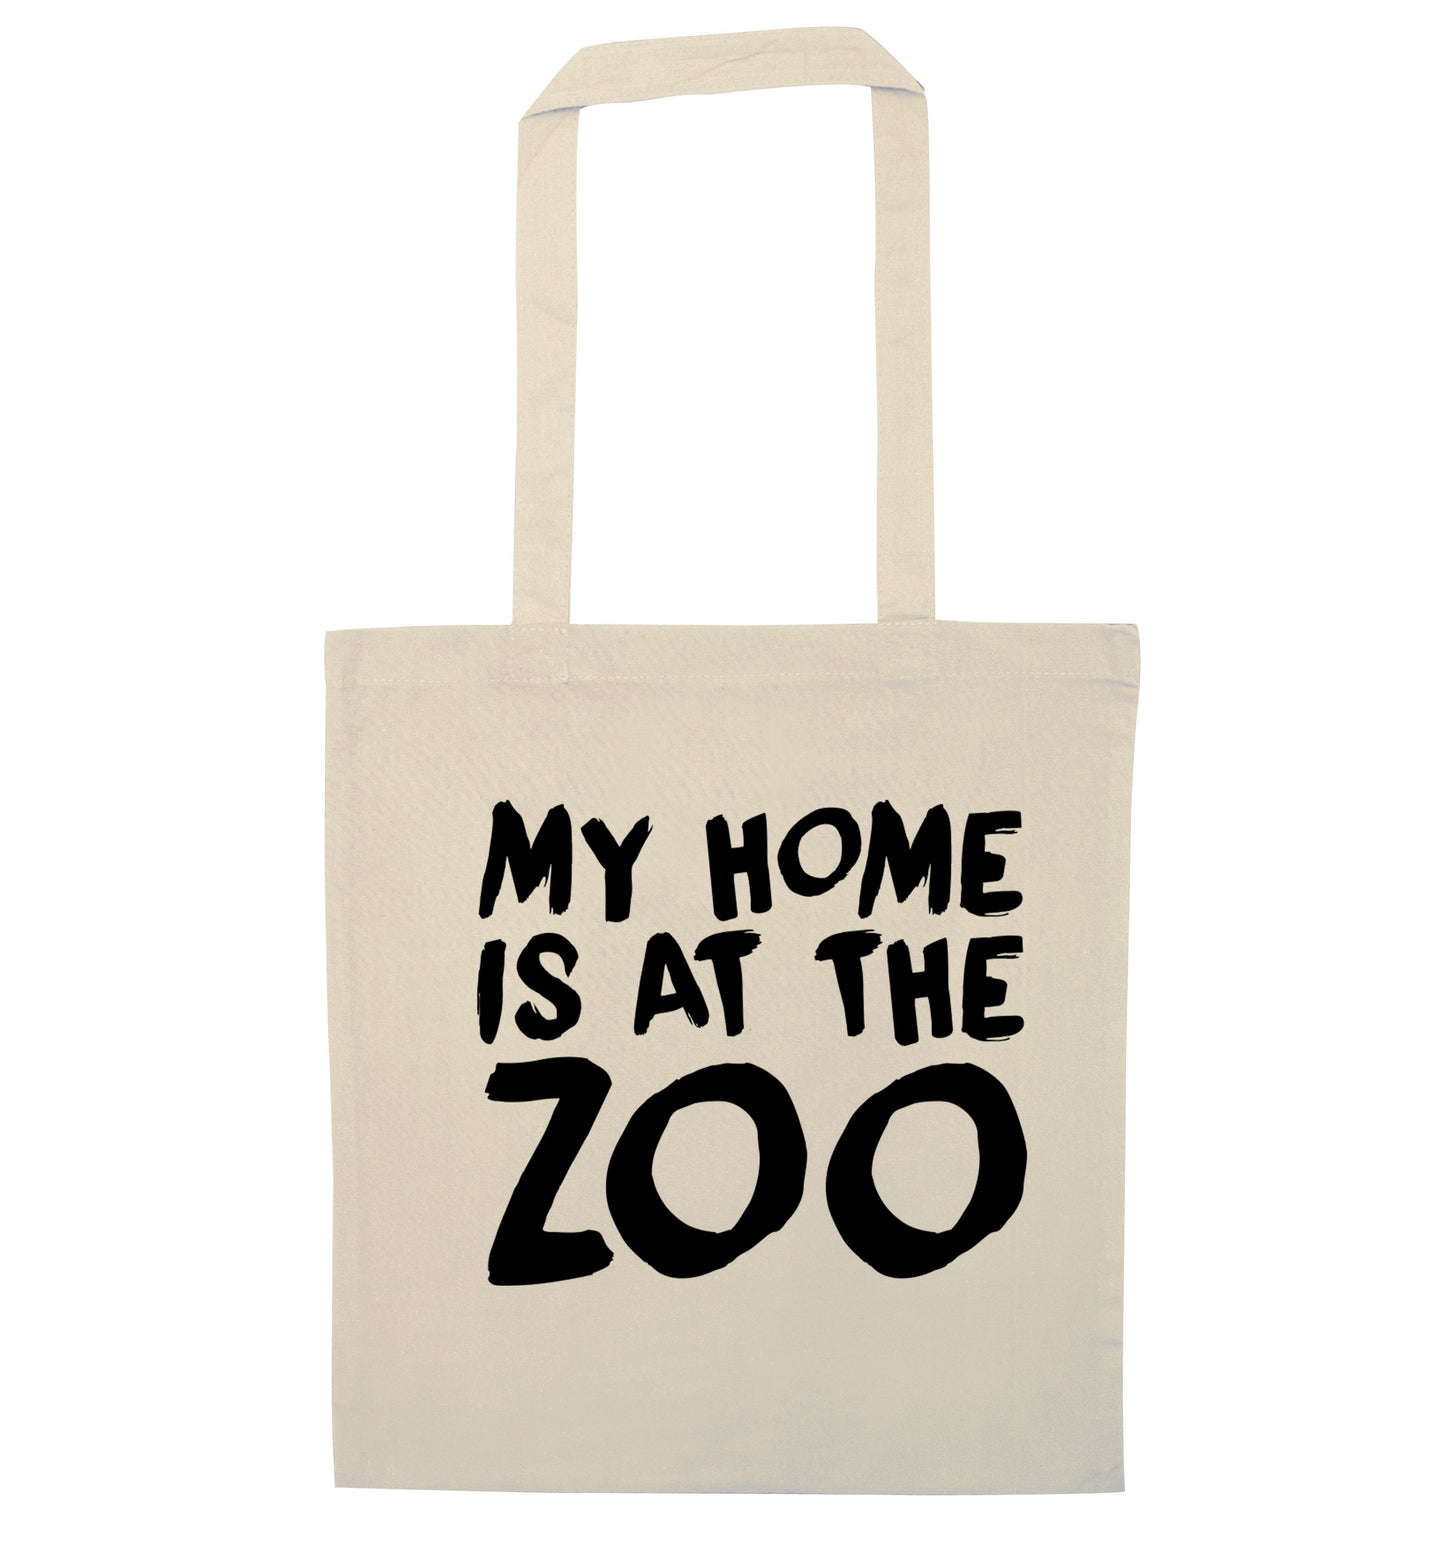 My home is at the zoo natural tote bag